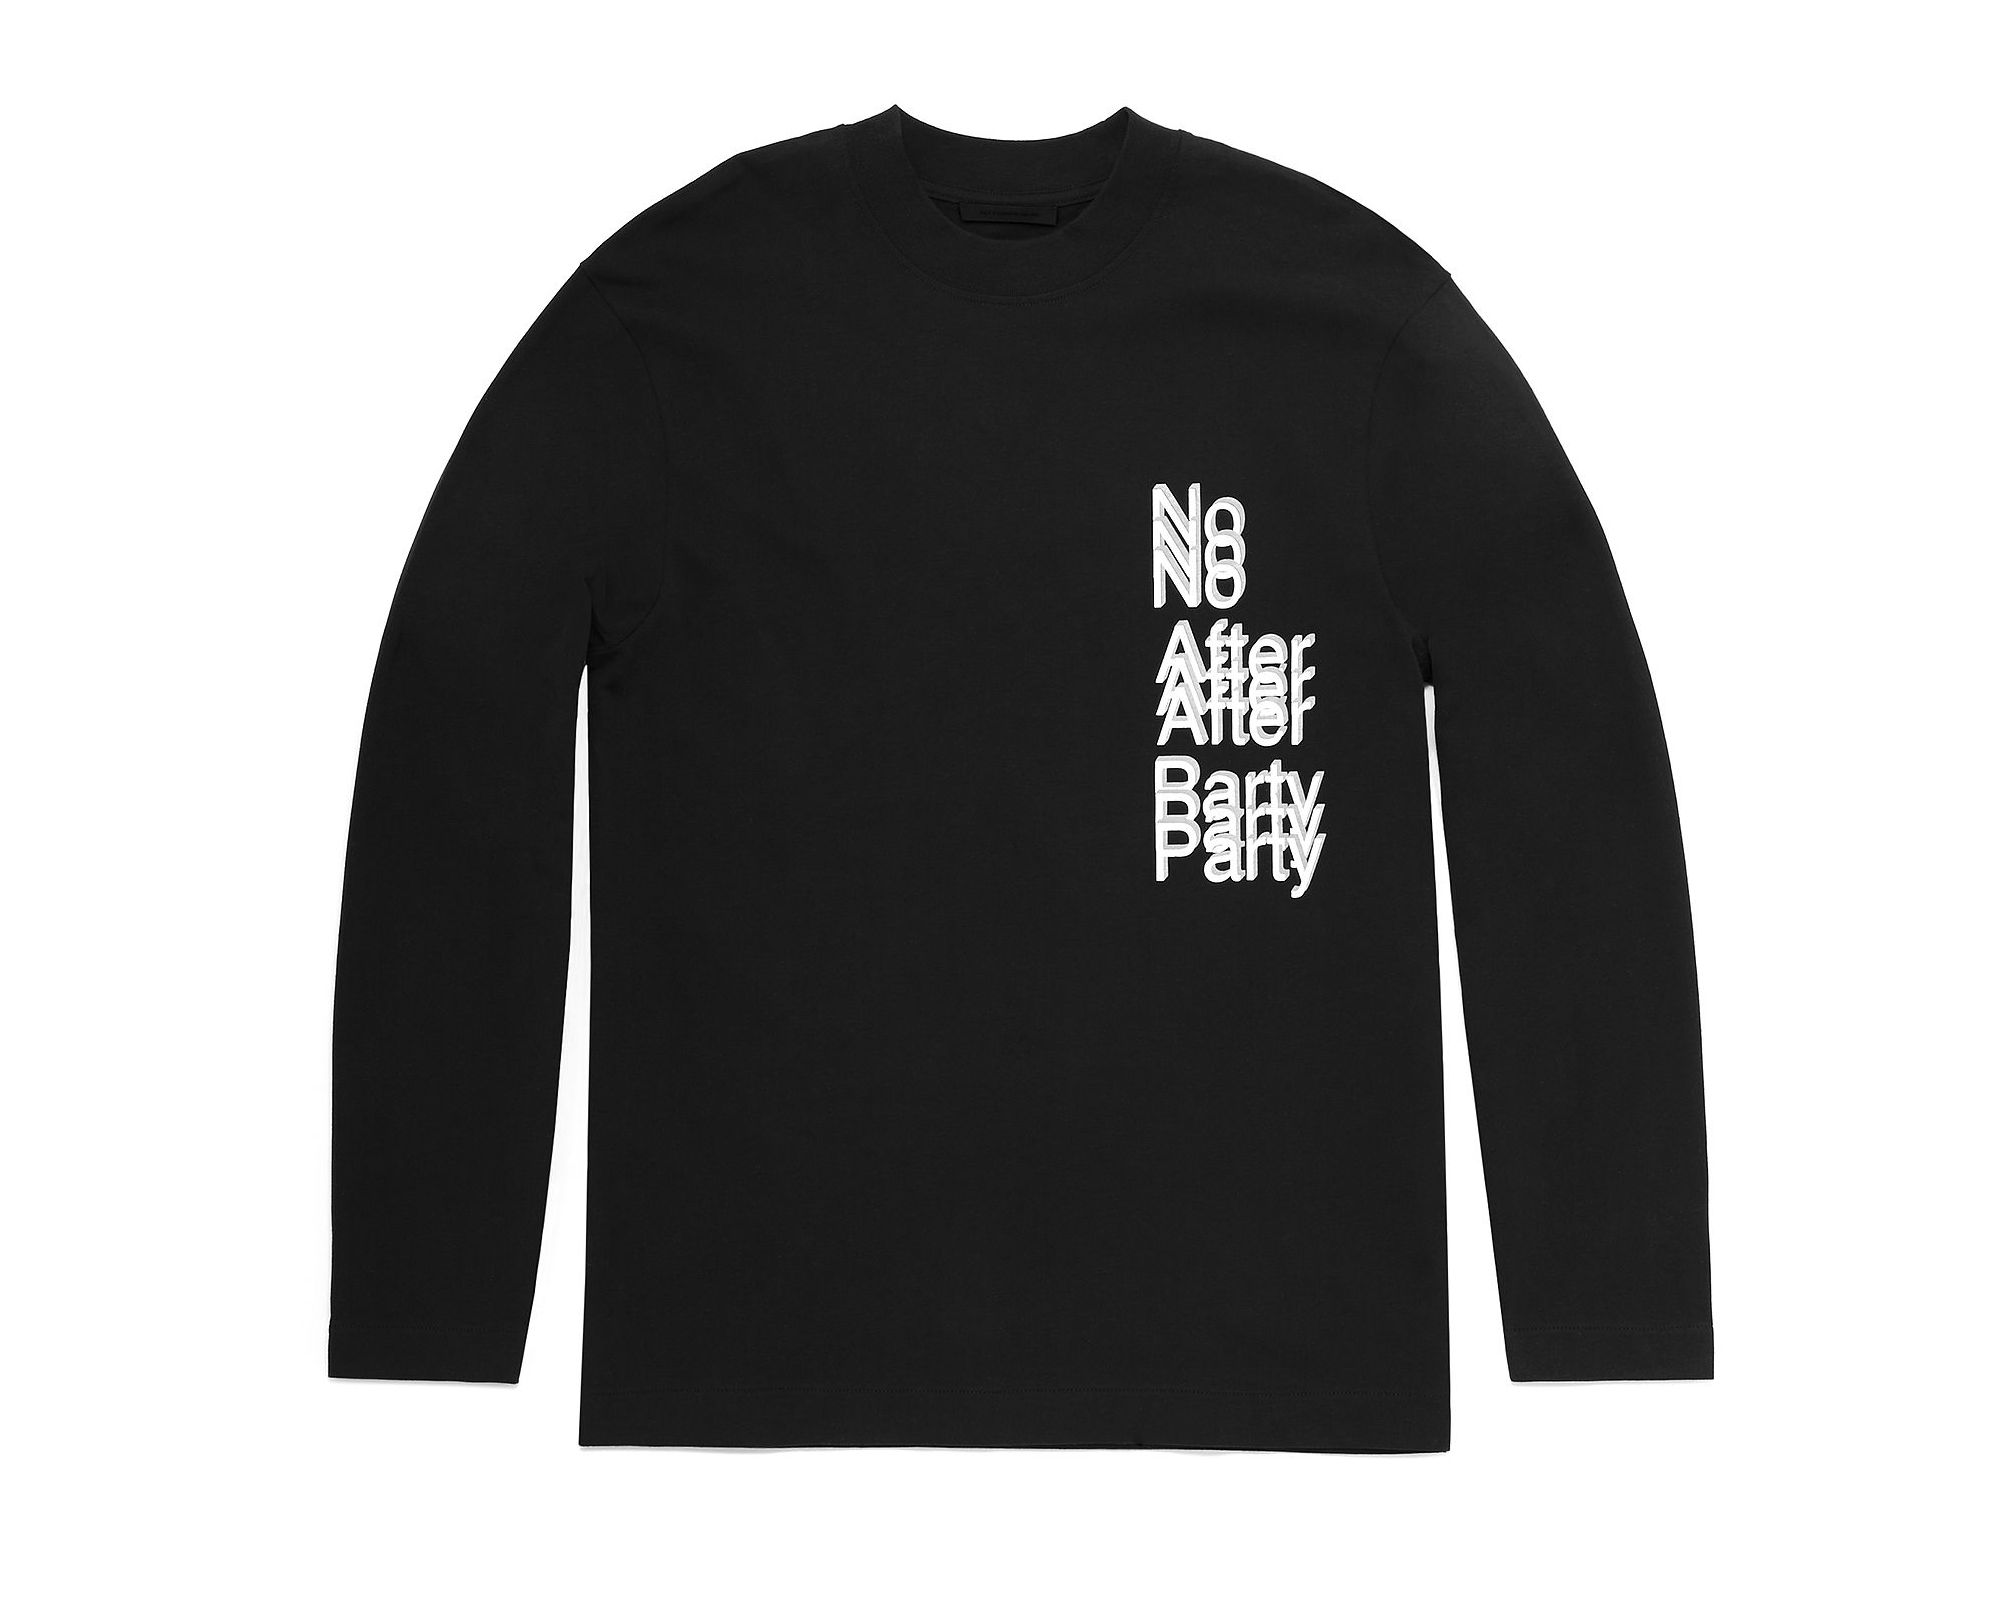 alexander wang s no after party capsule collection is shoppable alexander wang no after party long sleeve t shirt in black